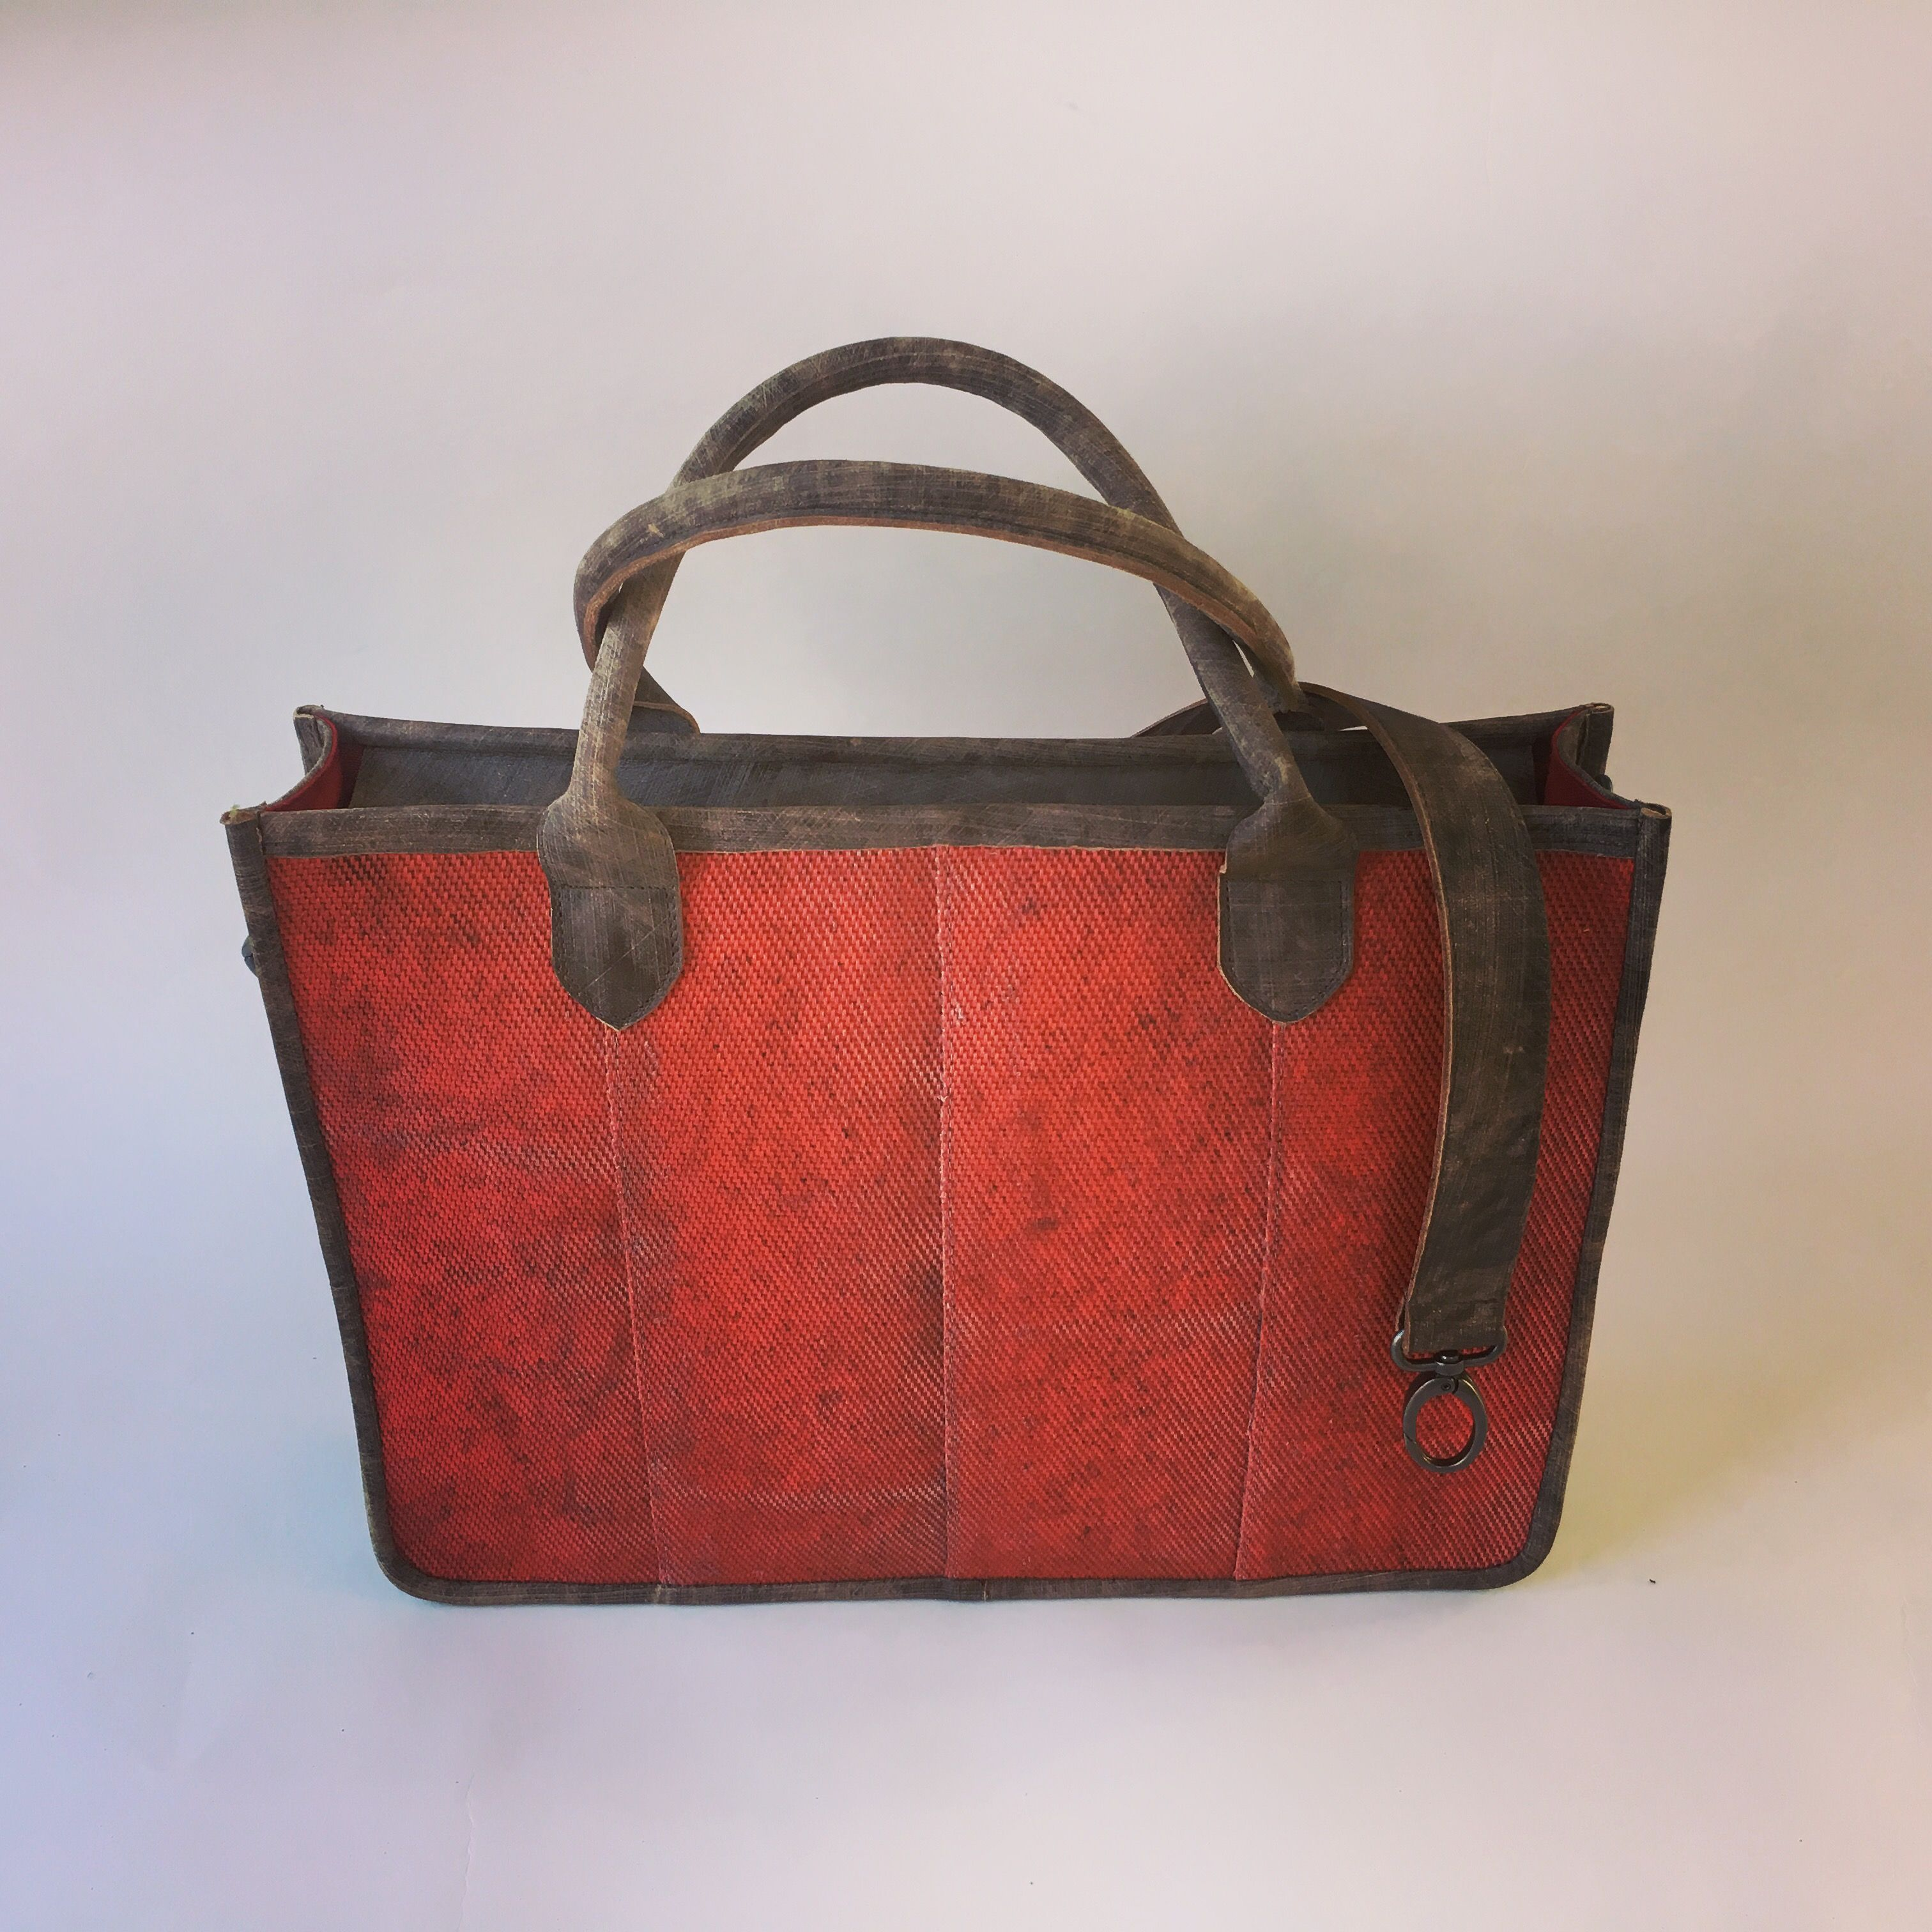 Laptop Bag Made Of Used Firehose And Leather Bags Fire Hose Projects Fire Hose